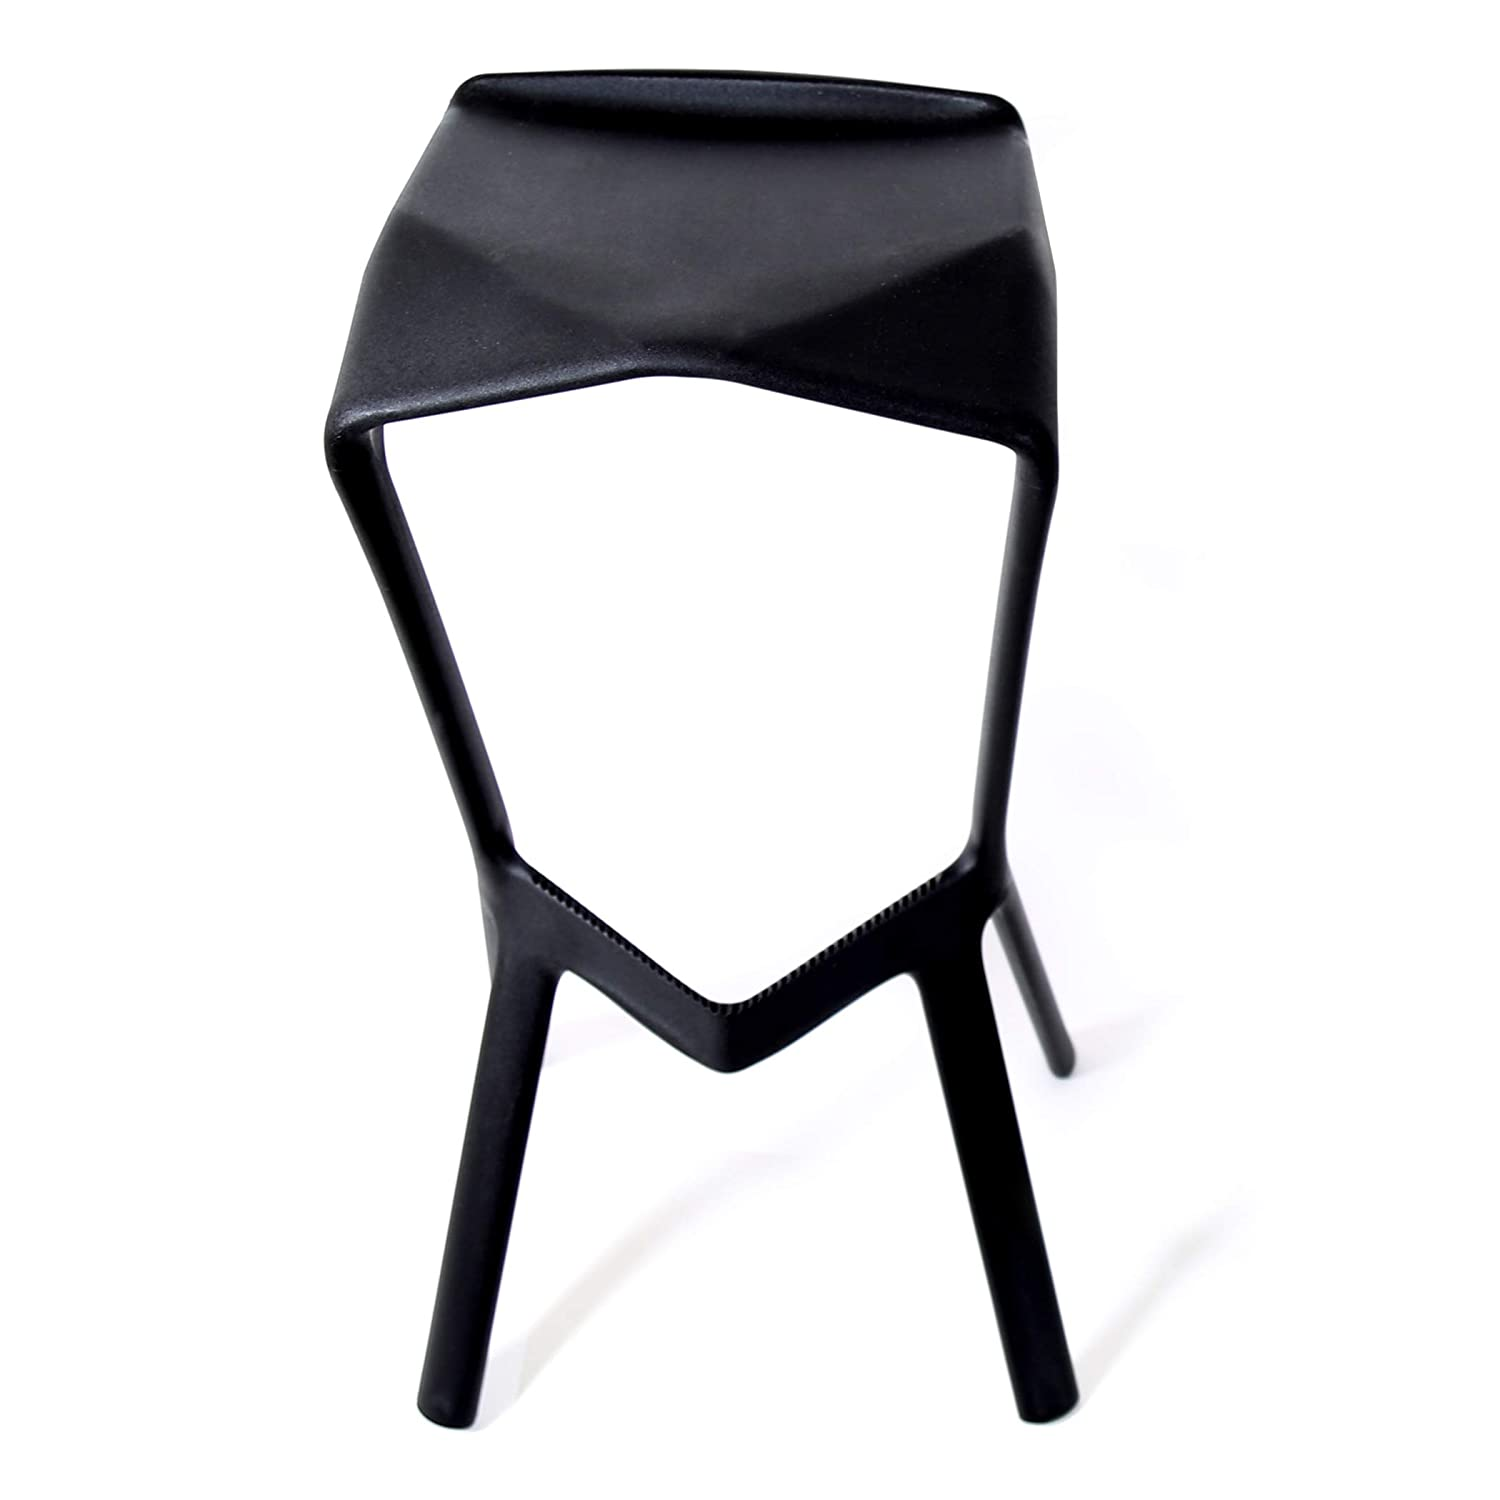 Awe Inspiring Amazon Com Vkf Renzel Usa Corp Miura Bar Stool Black Inzonedesignstudio Interior Chair Design Inzonedesignstudiocom